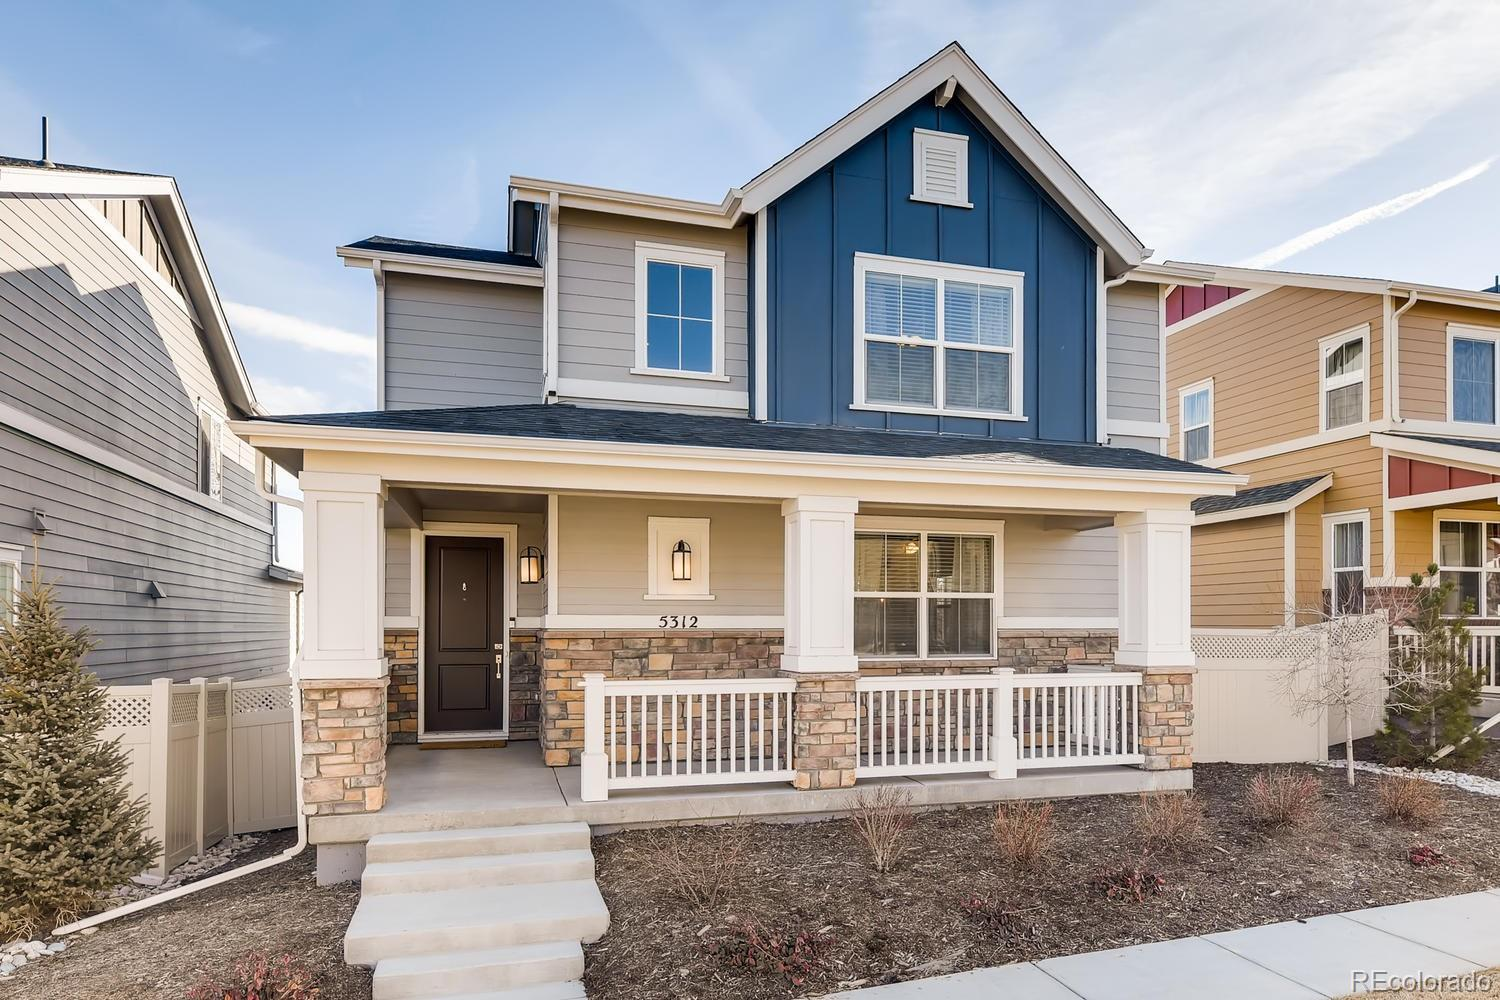 MLS# 1631314 - 1 - 5312 W 73rd Place, Westminster, CO 80003